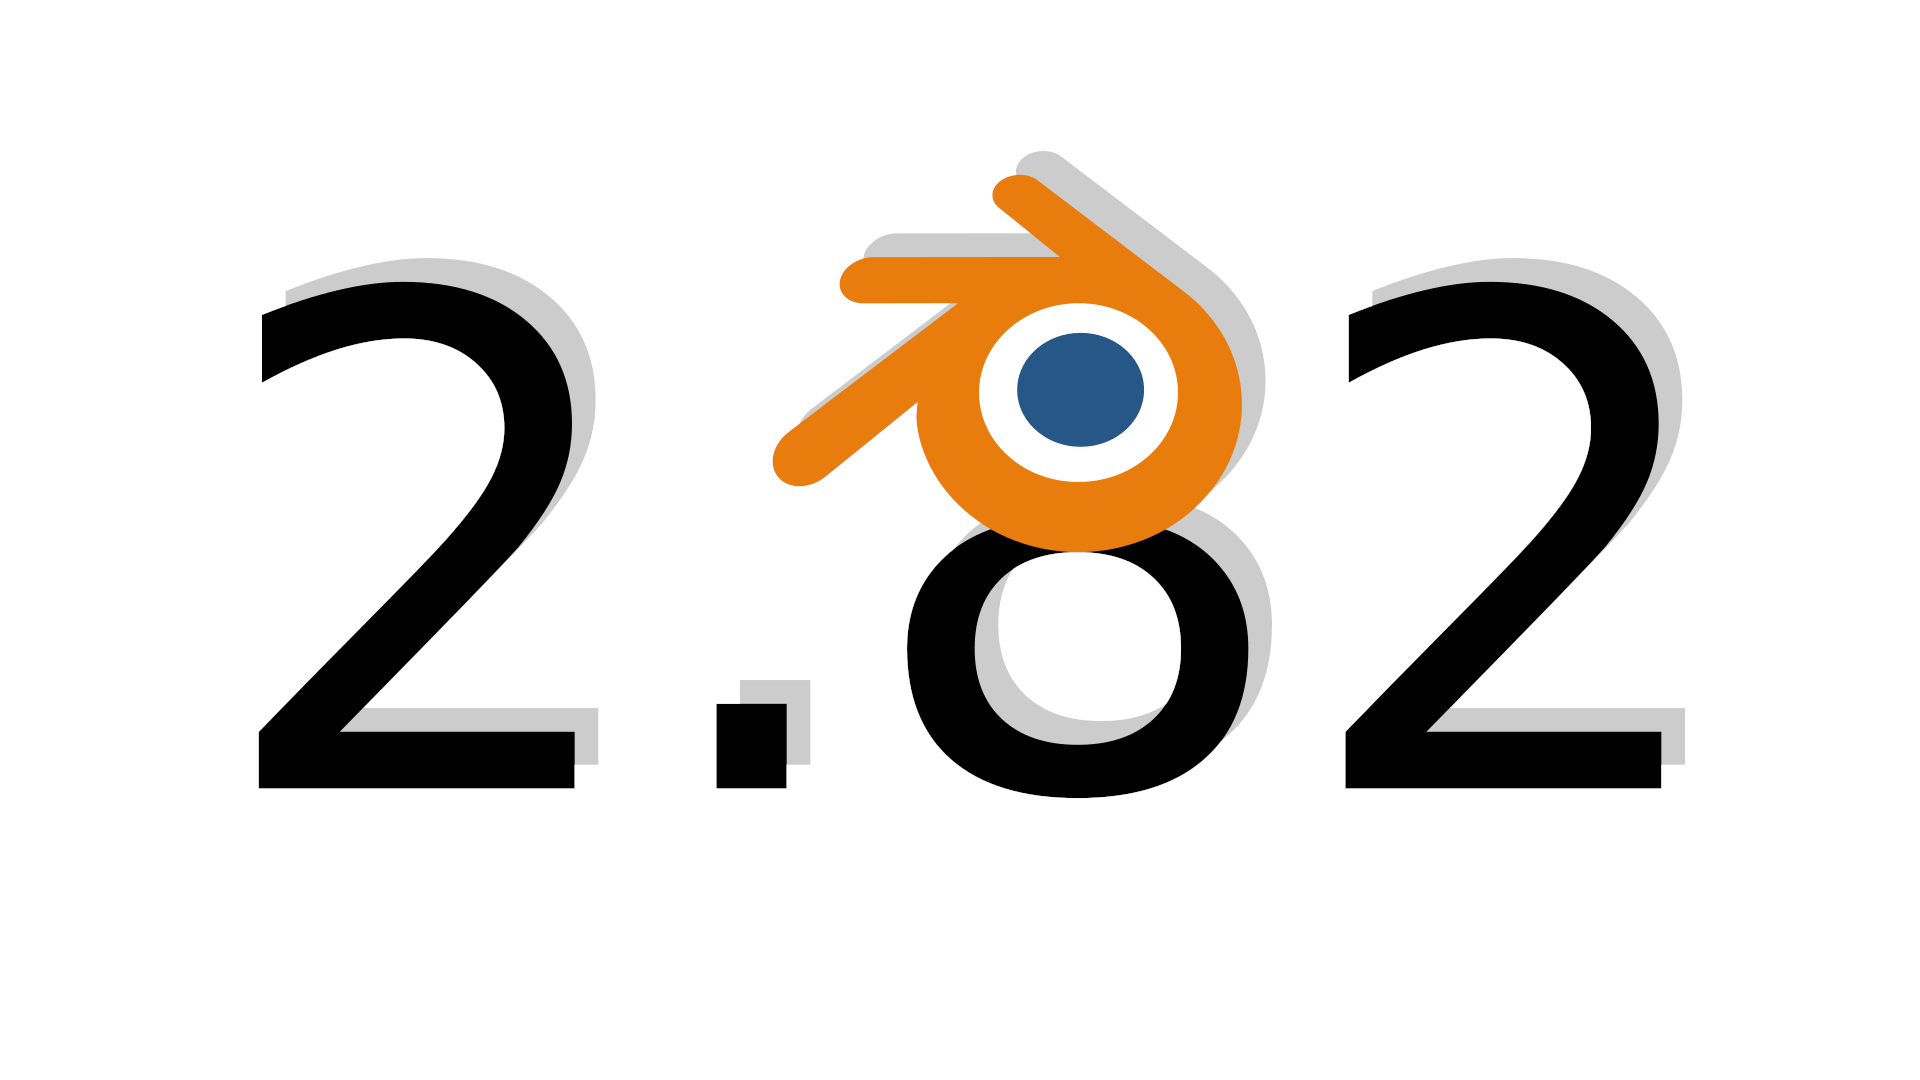 Blender 2.82 is out!